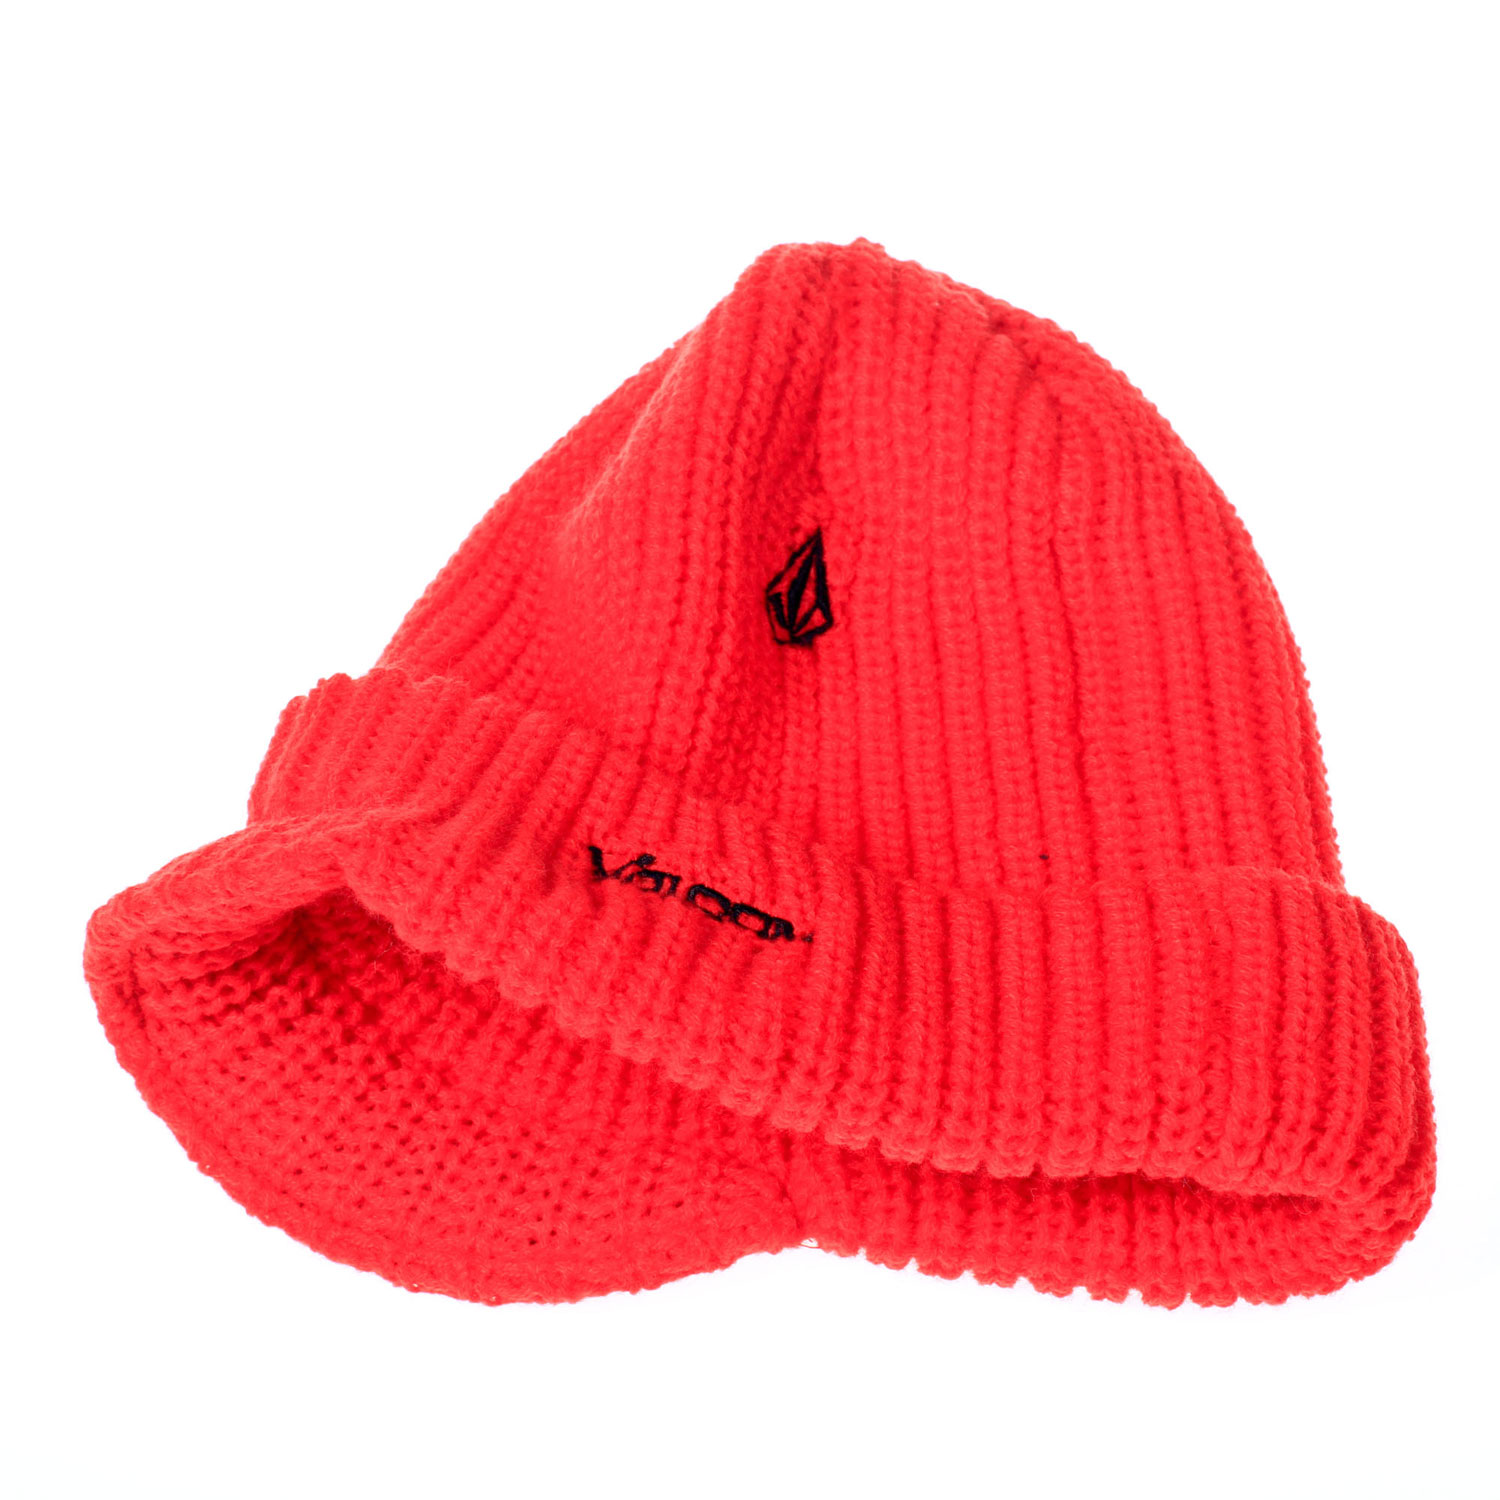 "Surf span style=""font-size: 13px; font-family: arial, sans, sans-serif"" This Volcom Victorville Beanie will keep you looking and feeling your best. Whether you planning on wearing it to hit the slopes and shred some powder, this brightly colored classic fit acrylic beanie with a brim fit is the perfect one to keep you warm and stylish all winter long. /span Key Features of the Volcom Victorville Beanie: One Size Fits Most Machine Knit Acrylic  Roll Over Stone Embroidery  Volcom Embroidery  Brim Fit - $15.95"